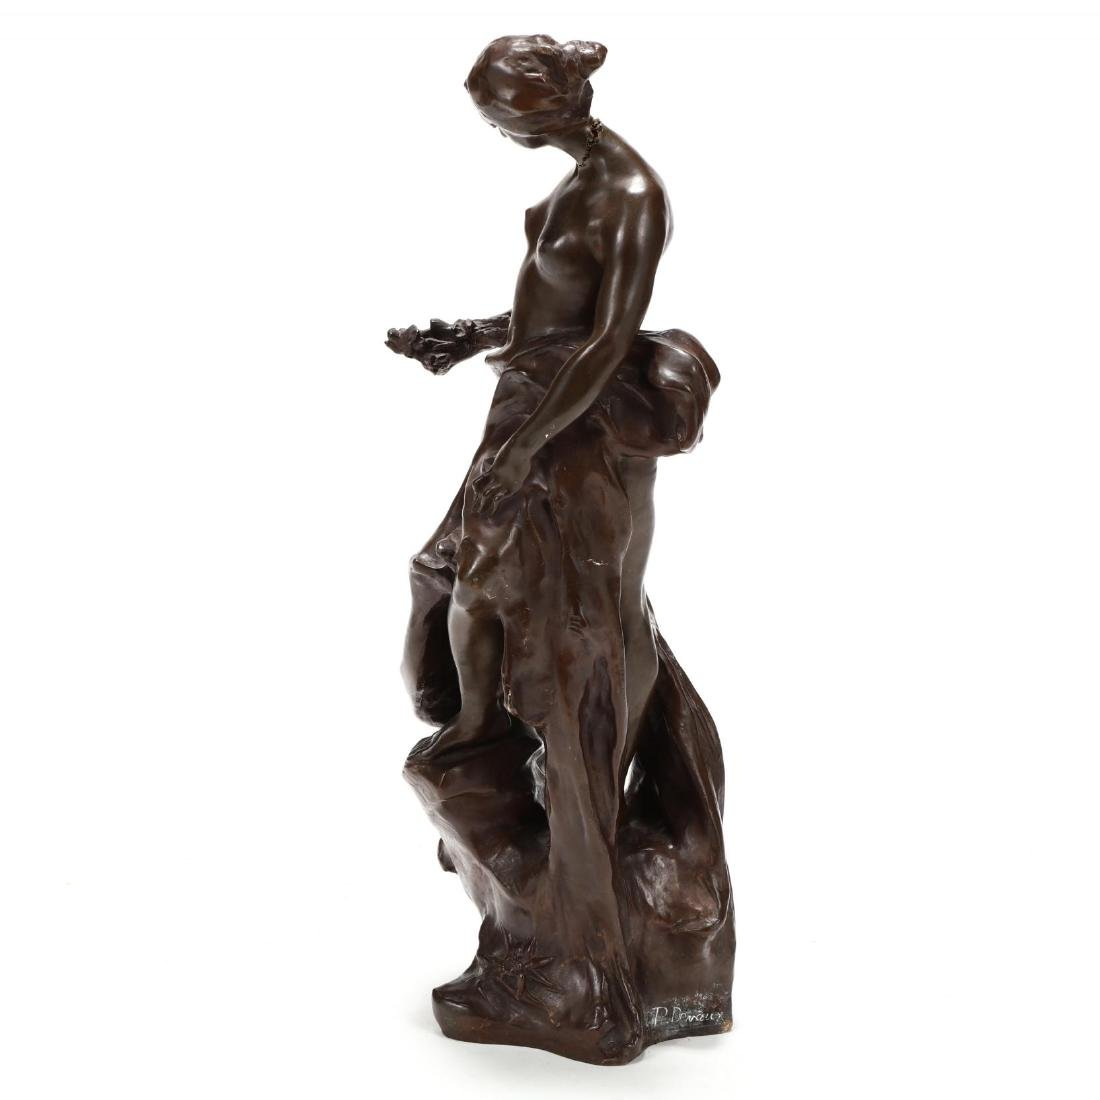 Pierre Devaux (French 1865-1938), Bronze Sculpture of a - 6